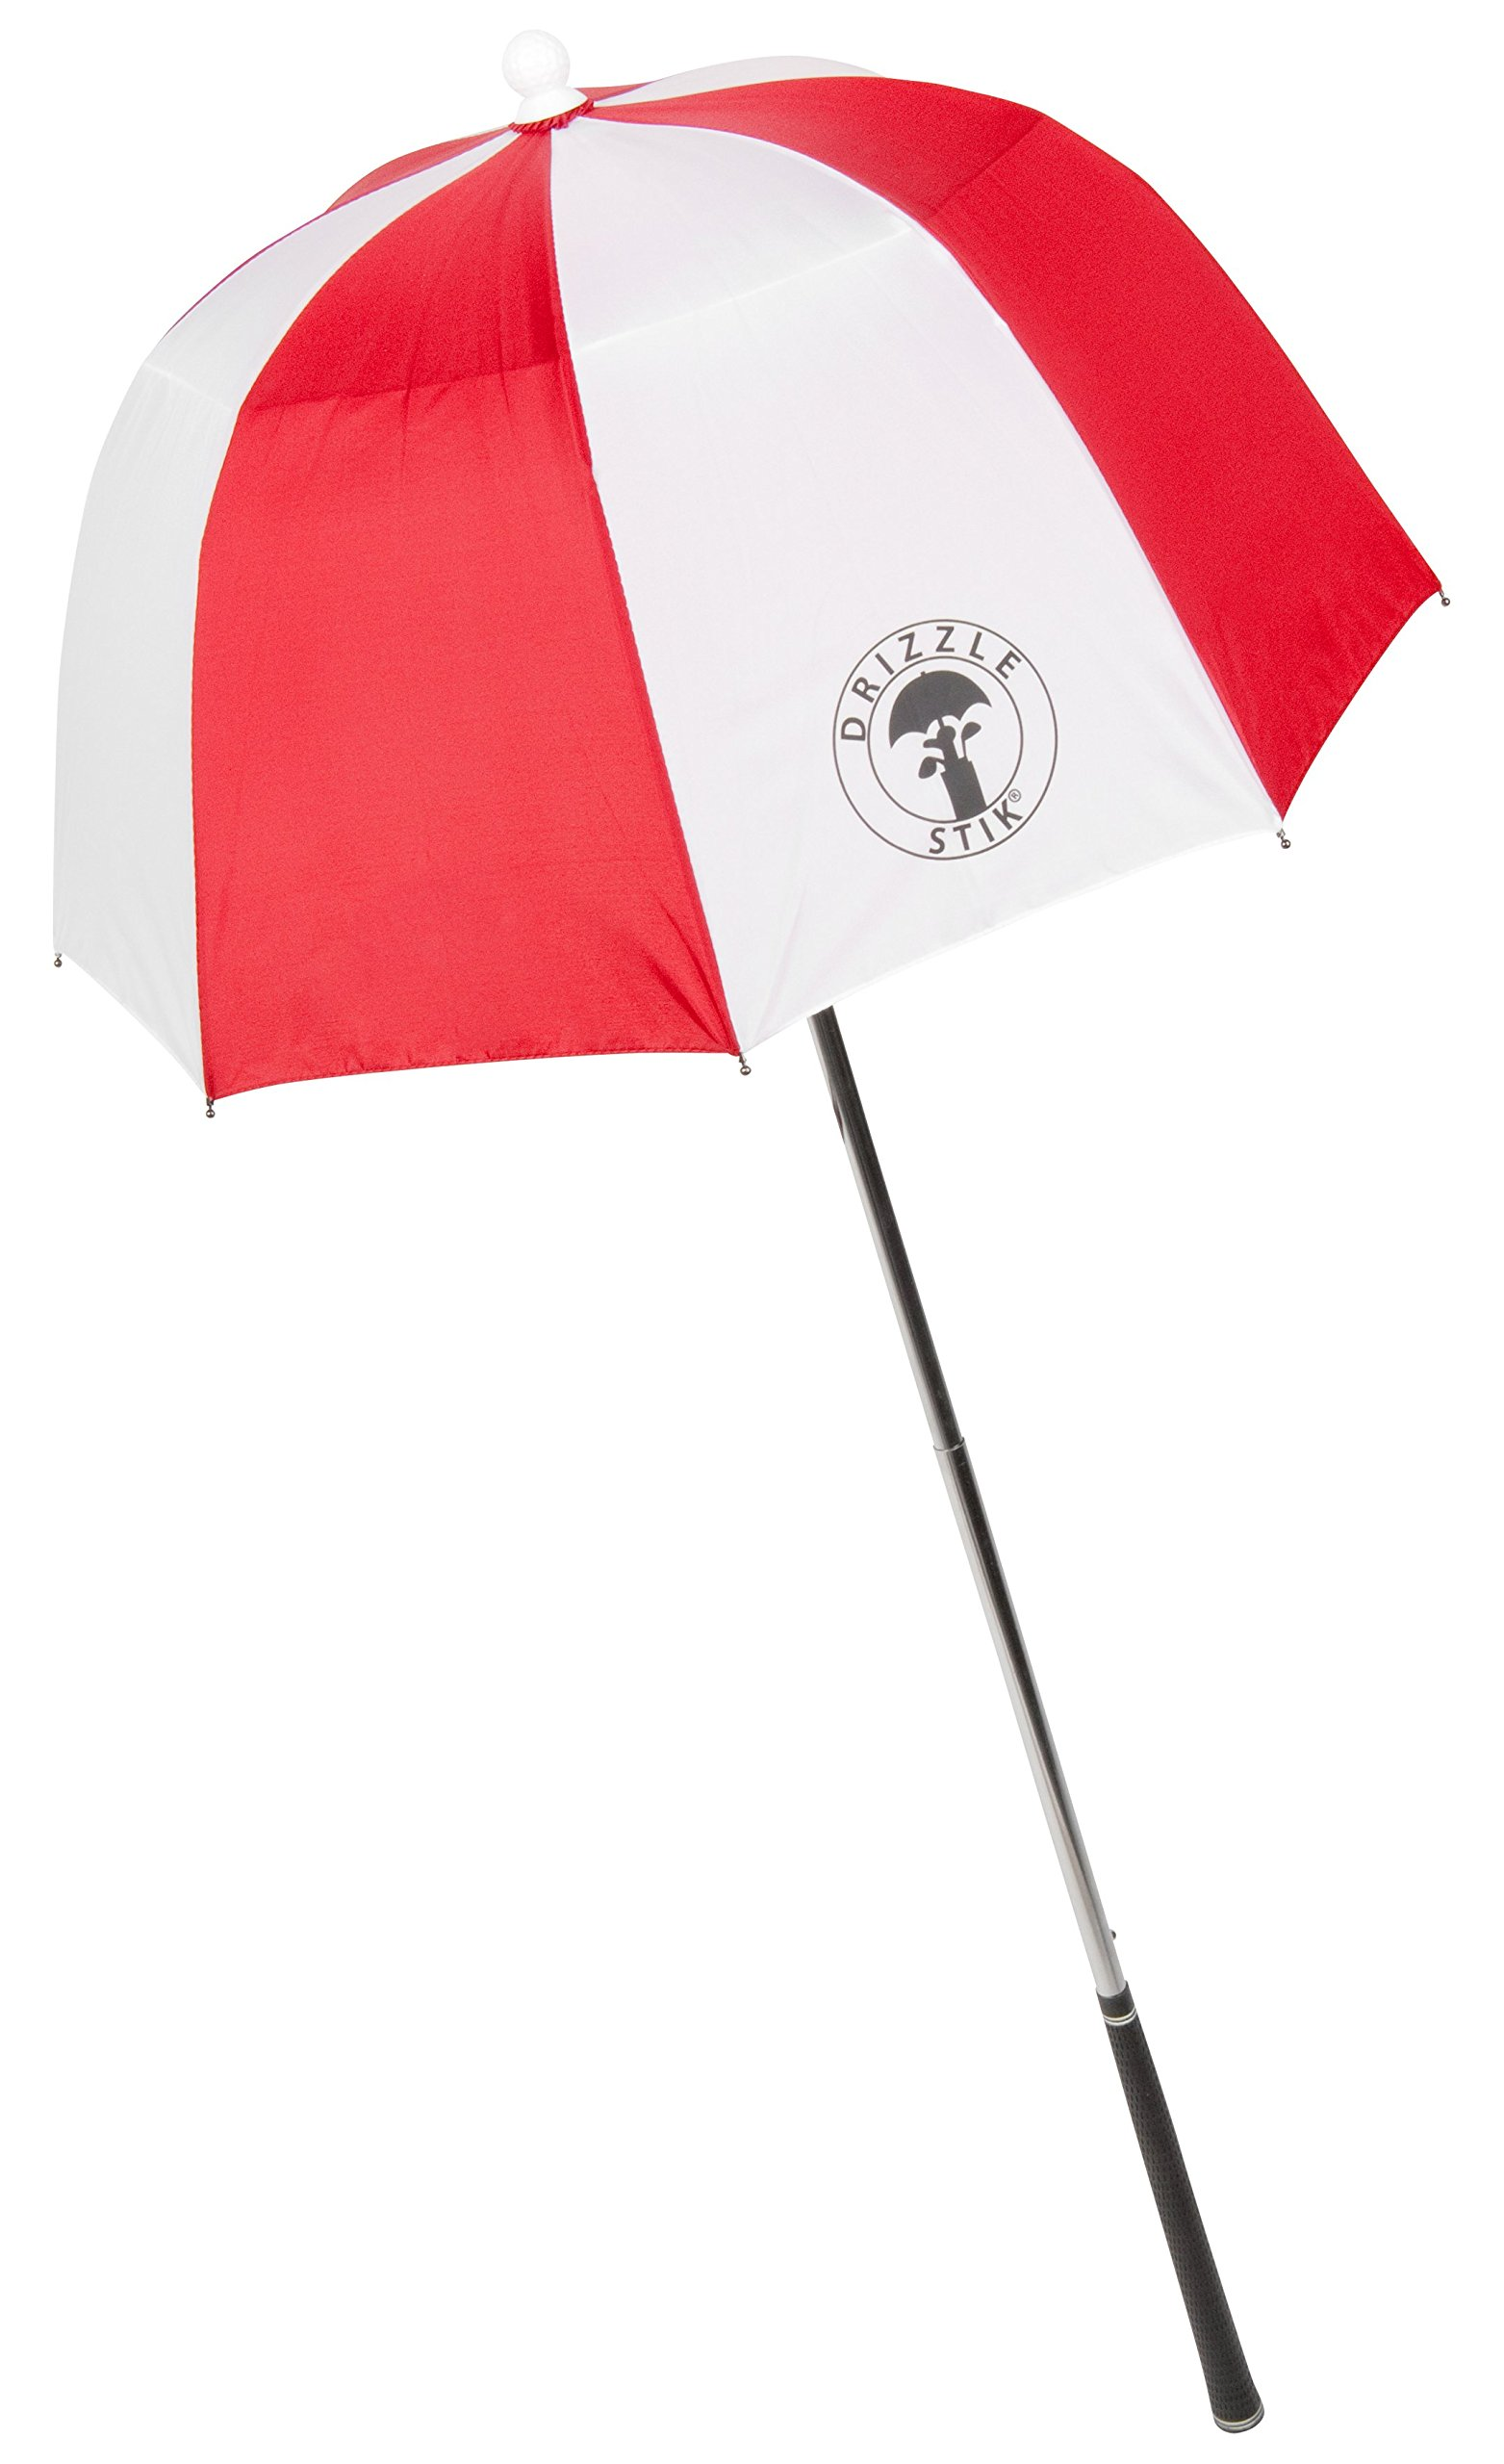 DrizzleStik Flex - Golf Club Umbrella (Red/White) by Drizzle Stik